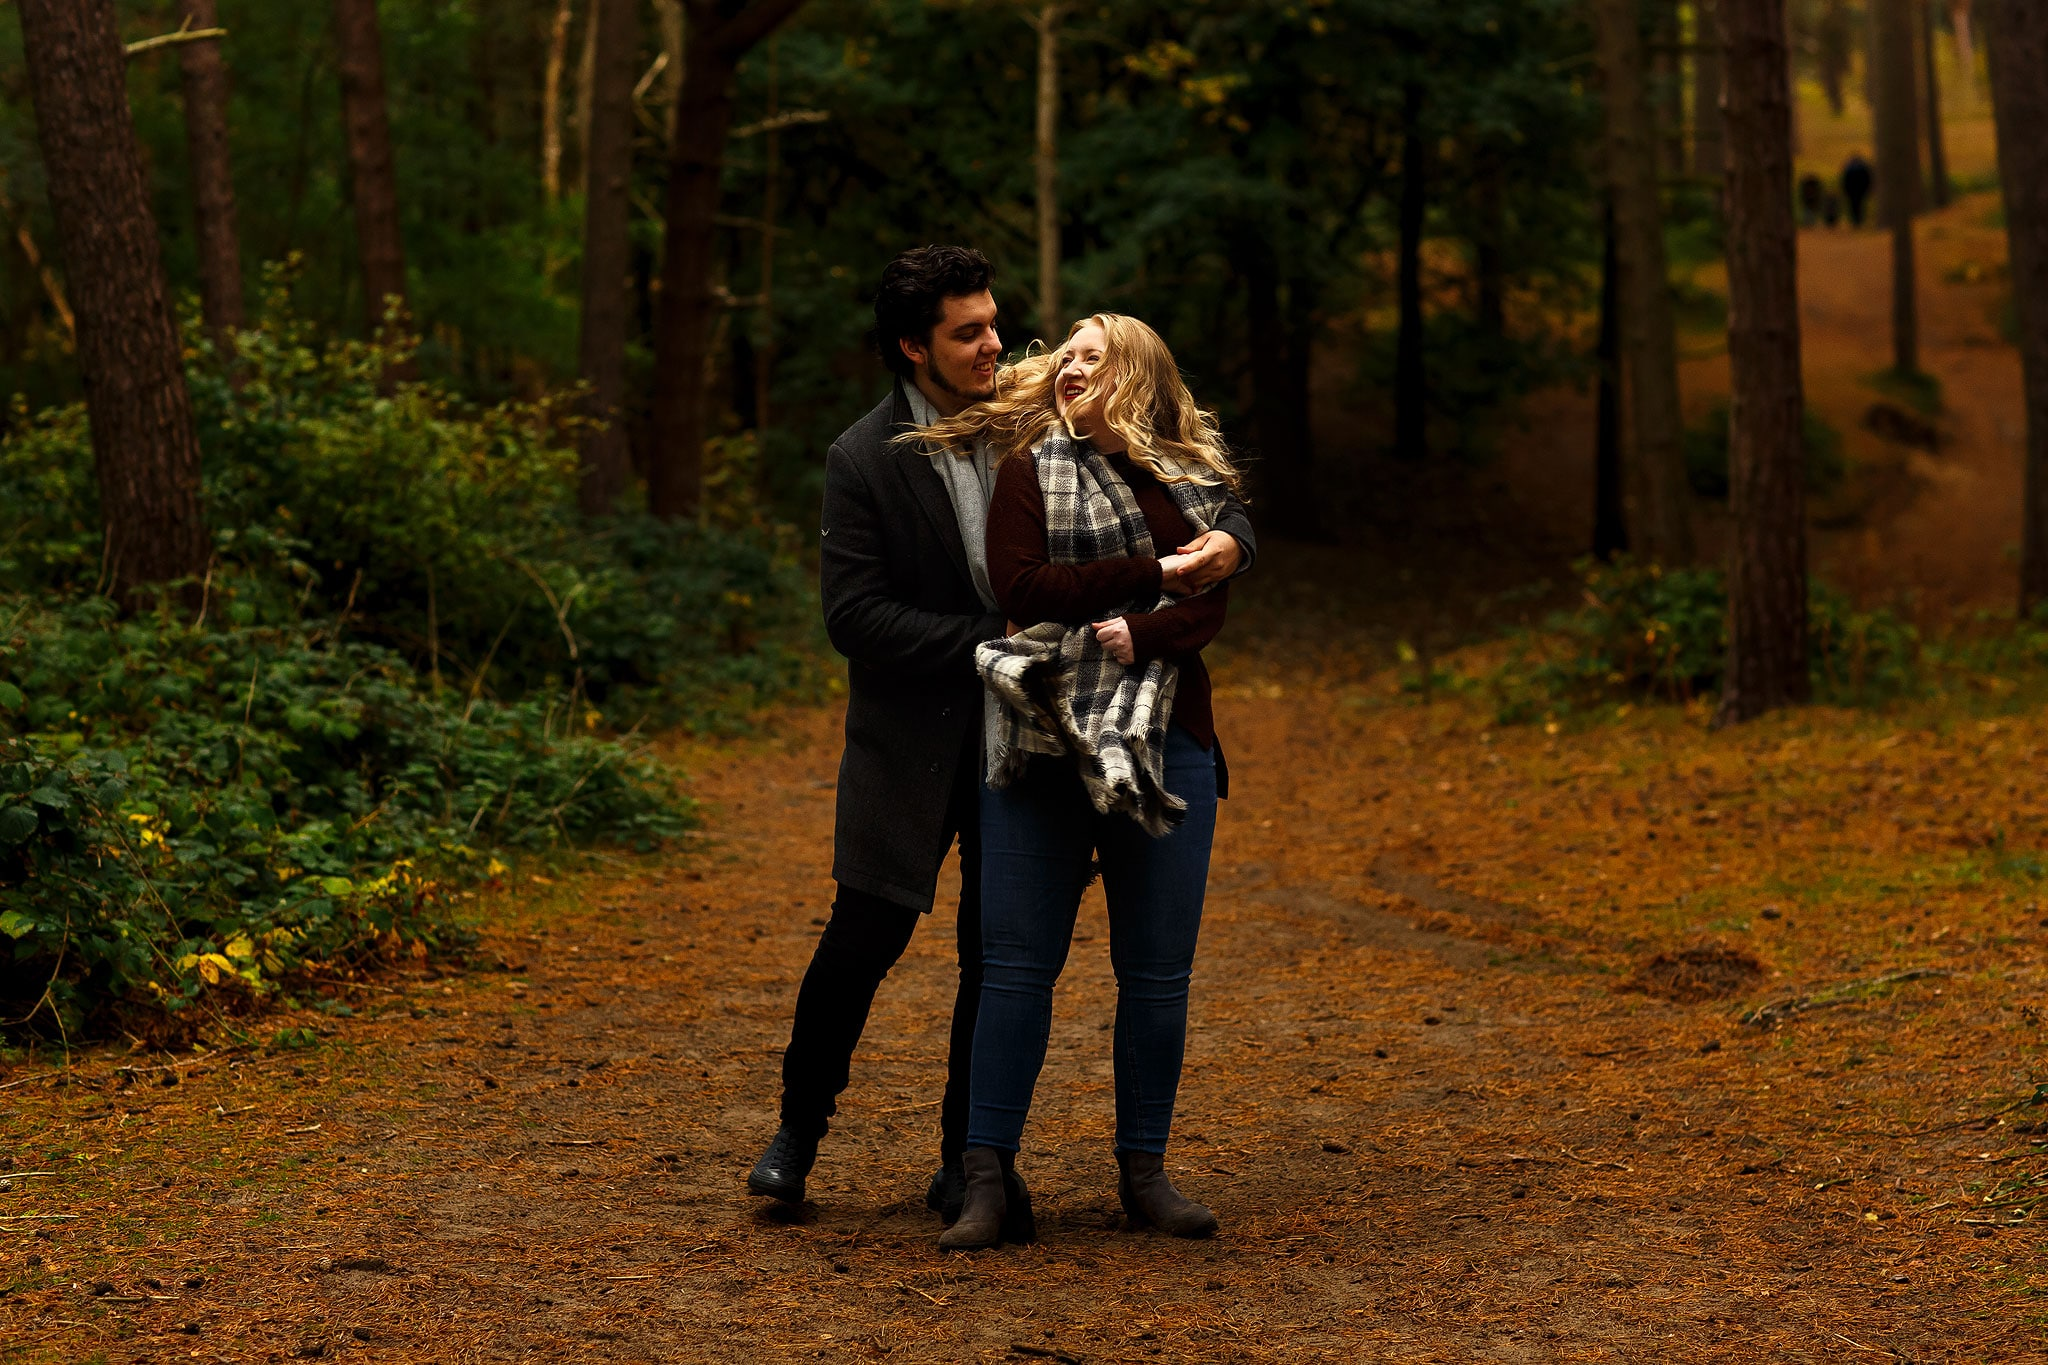 Autumn engagement shoot in the woods with golden leaves. Girl with flowing blonde hair.